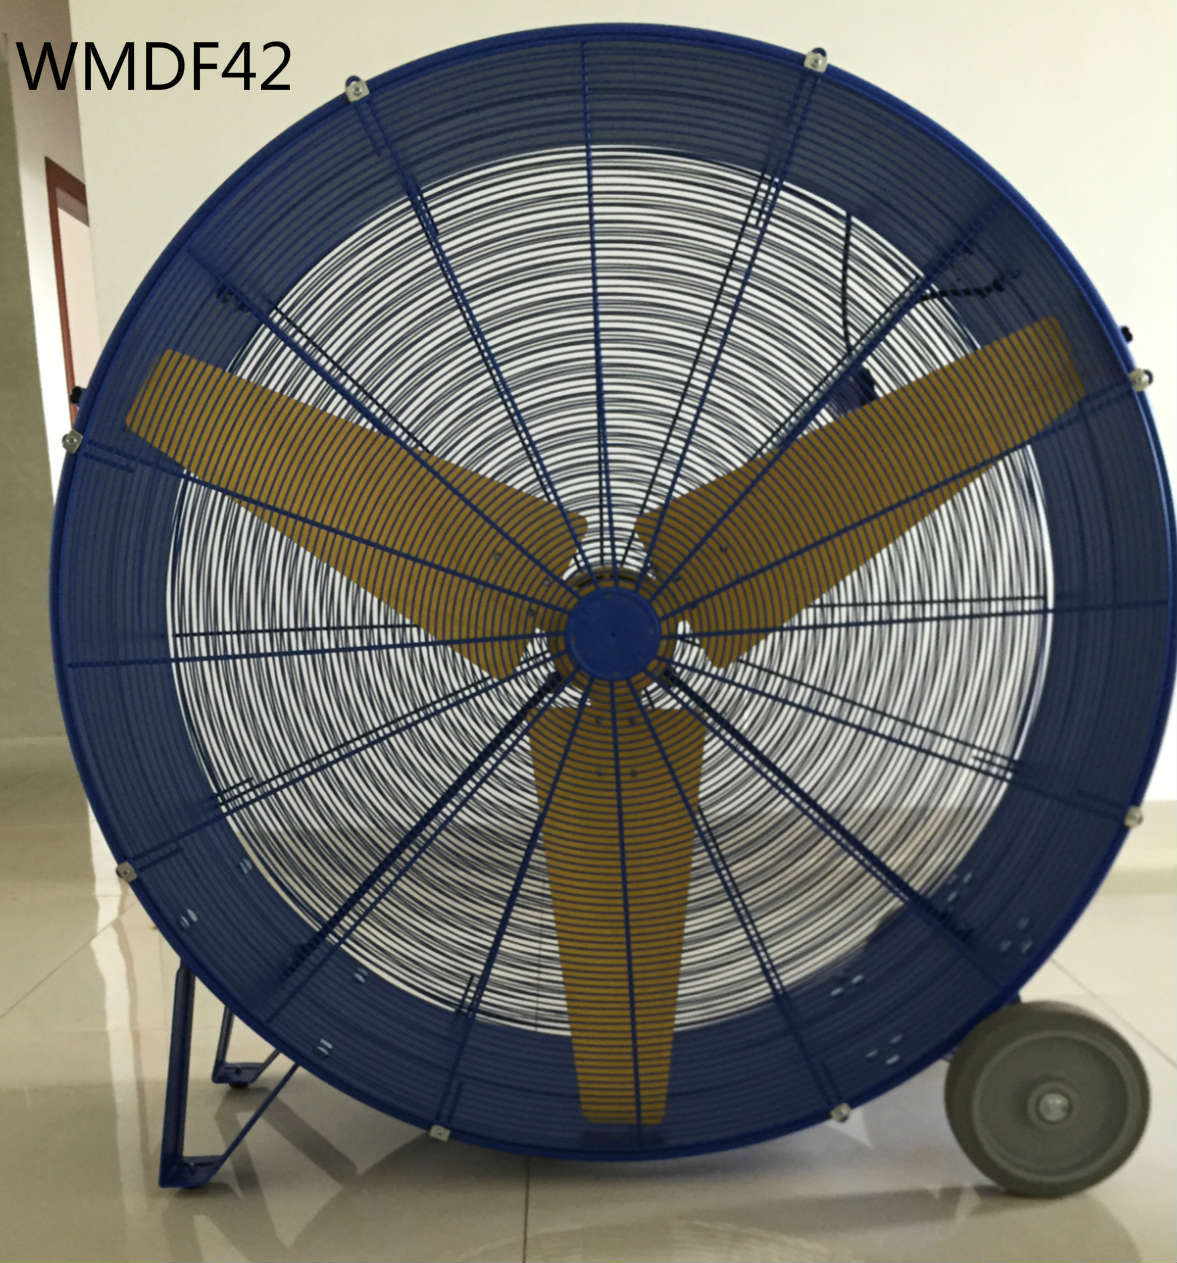 42 in. Industrial Heavy Duty, 2-Speed, Multi-Purpose Drum Fan with Aluminum Blade Material